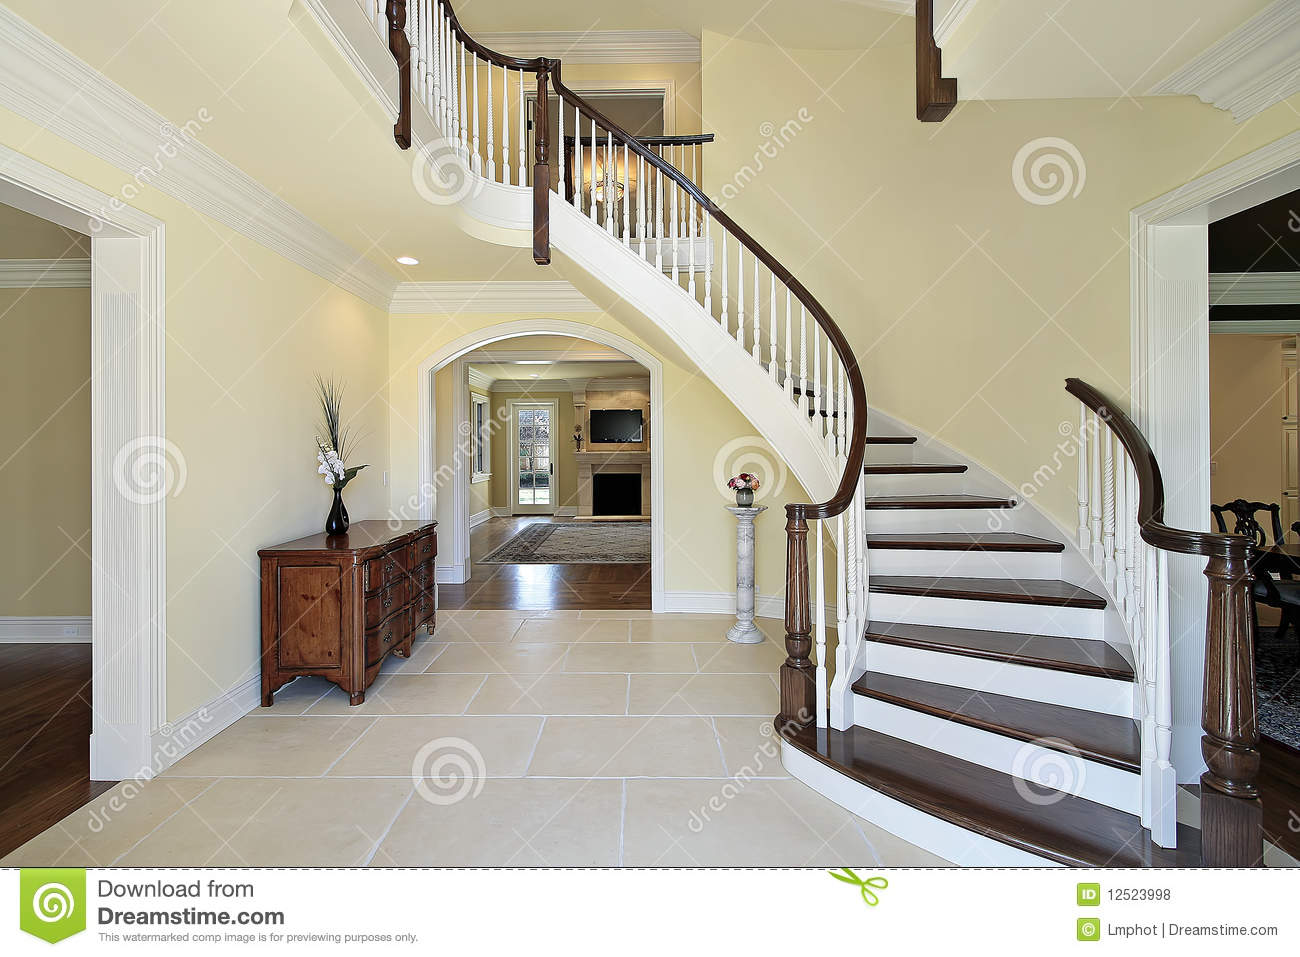 Foyer with curved staircase stock photo image of room for Escaleras de cemento para interiores